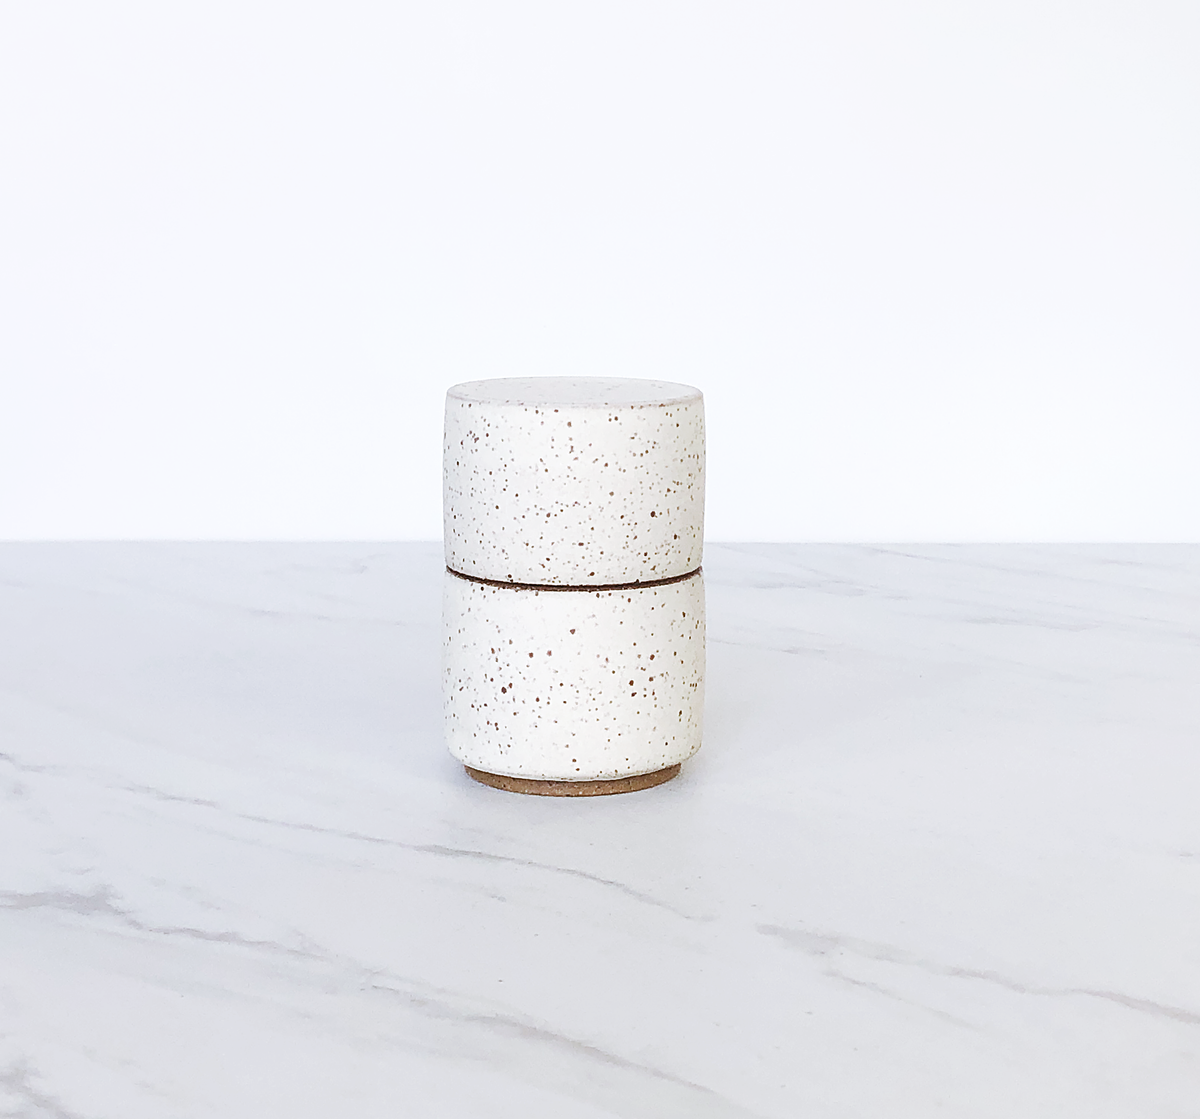 Image of Ceramic match holder with lid, glazed in matte cream